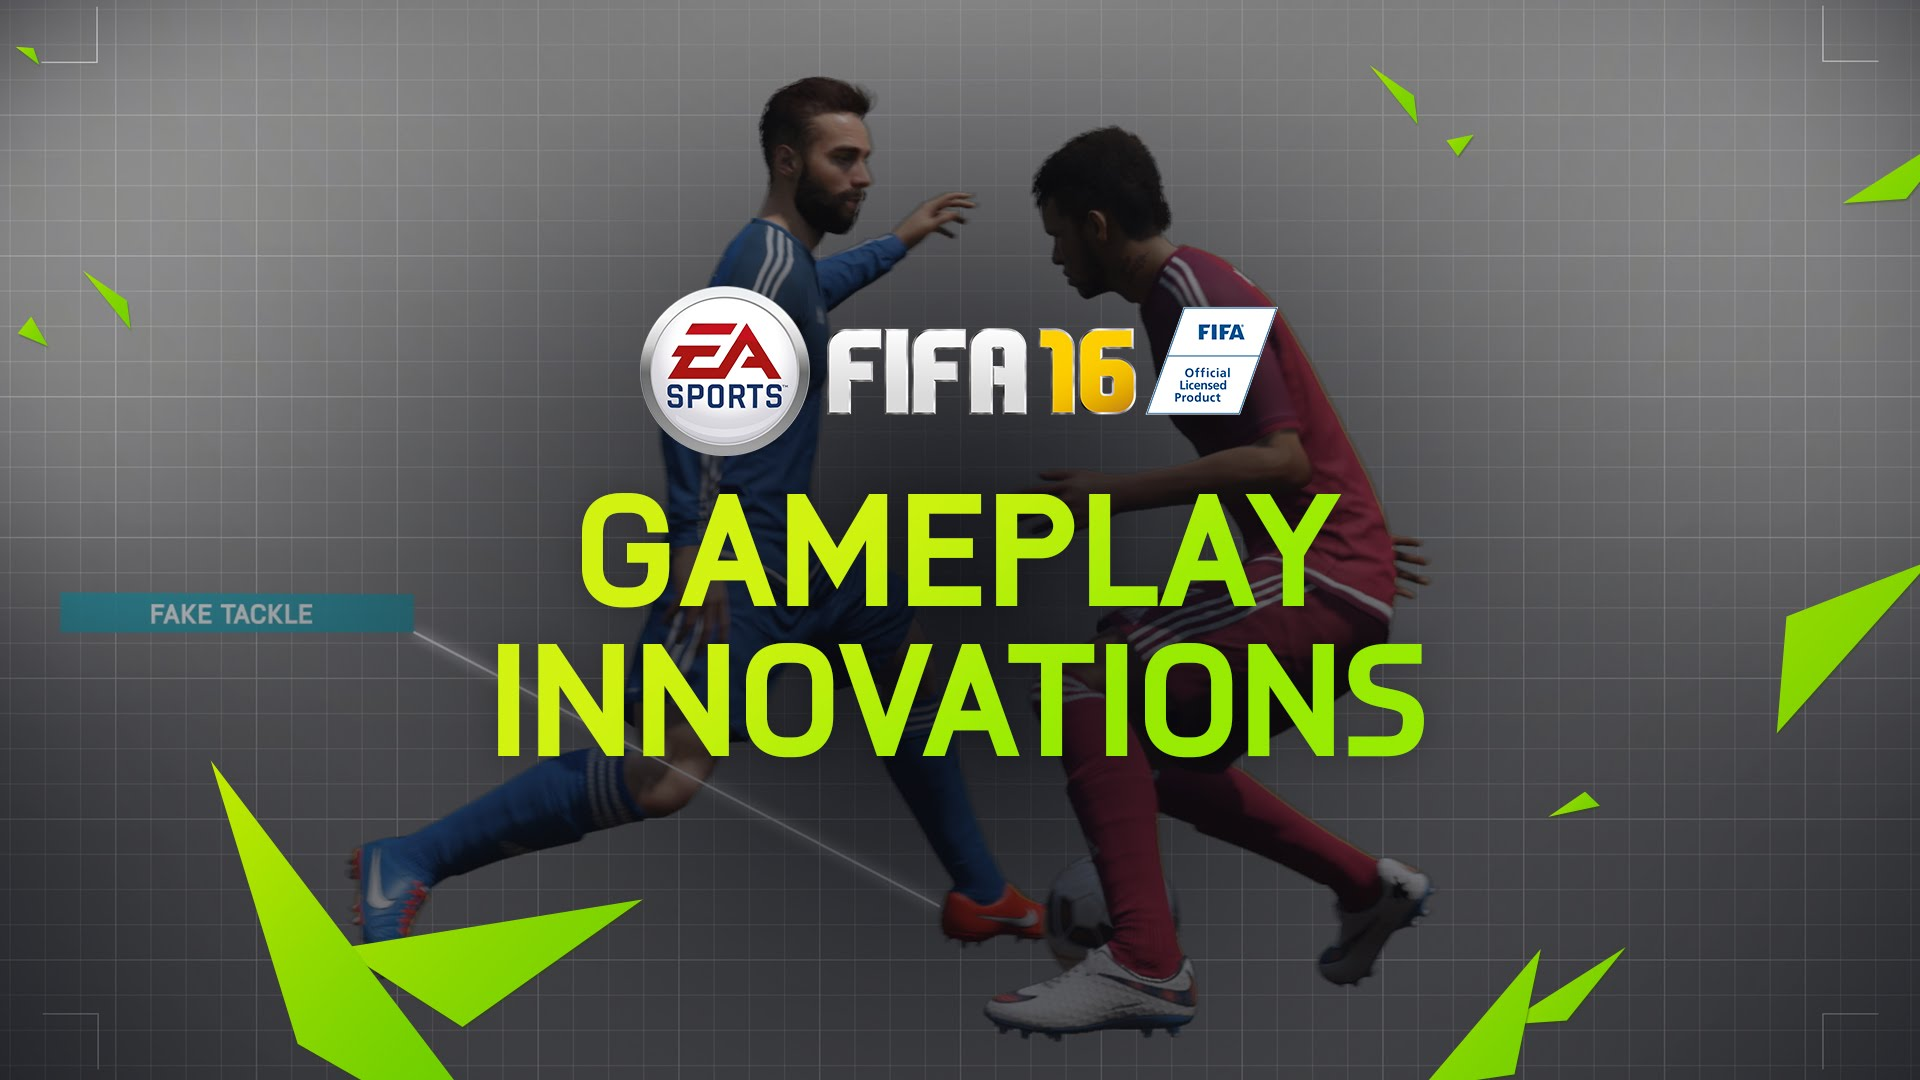 FIFA 16 Gameplay Innovations